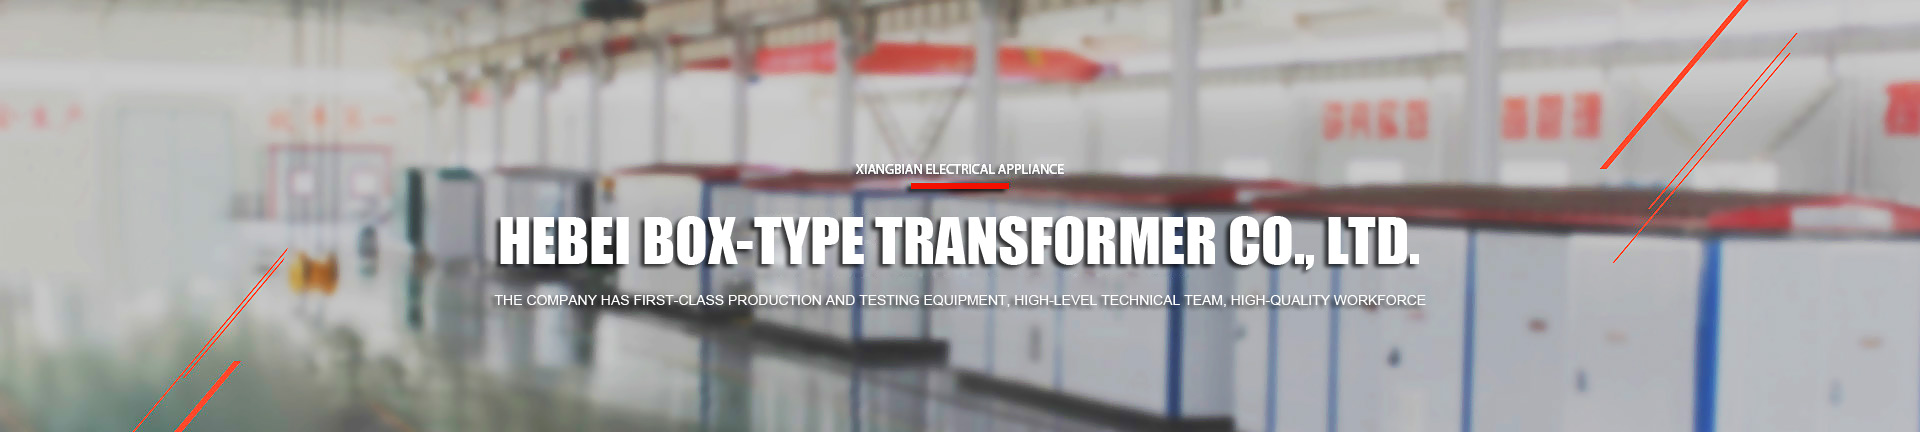 Hebei Box-type Transformer